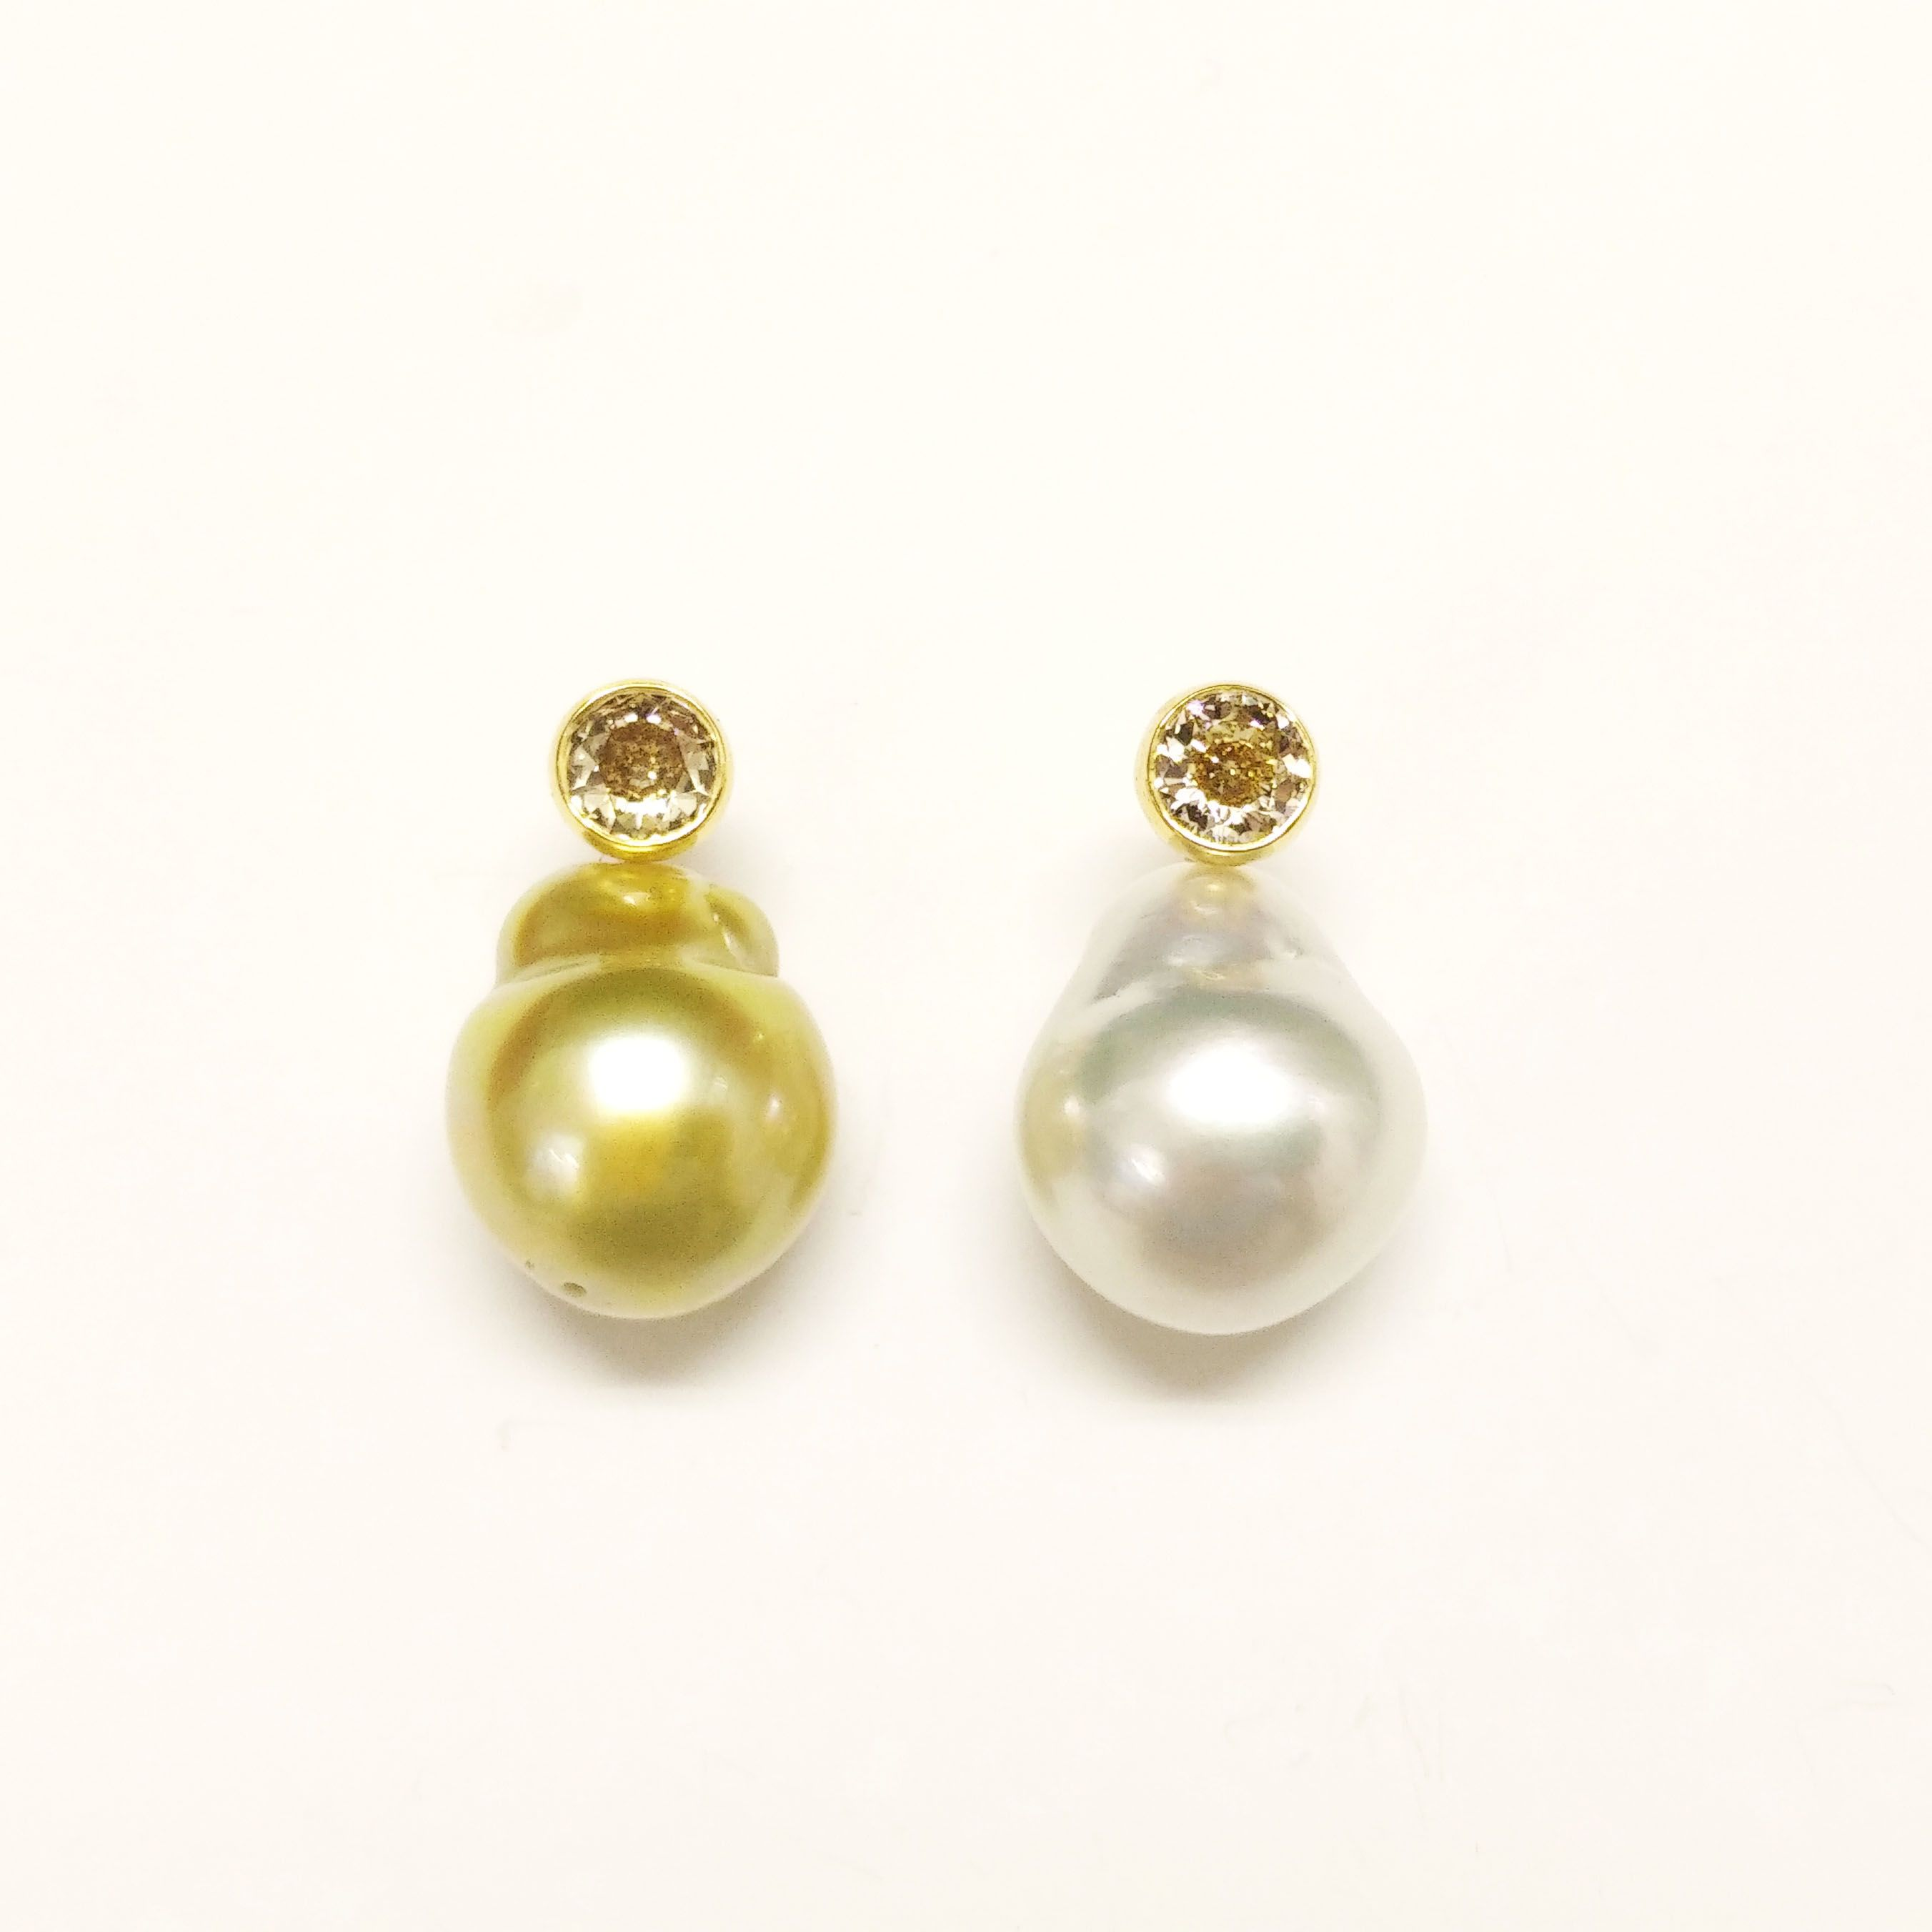 204e38401 South Sea Baroque Pearl Earrings by Ame Gallery, in 18K yellow gold with  diamonds and south sea baroque pearls #earrings #pearlearrings #amegallery  ...